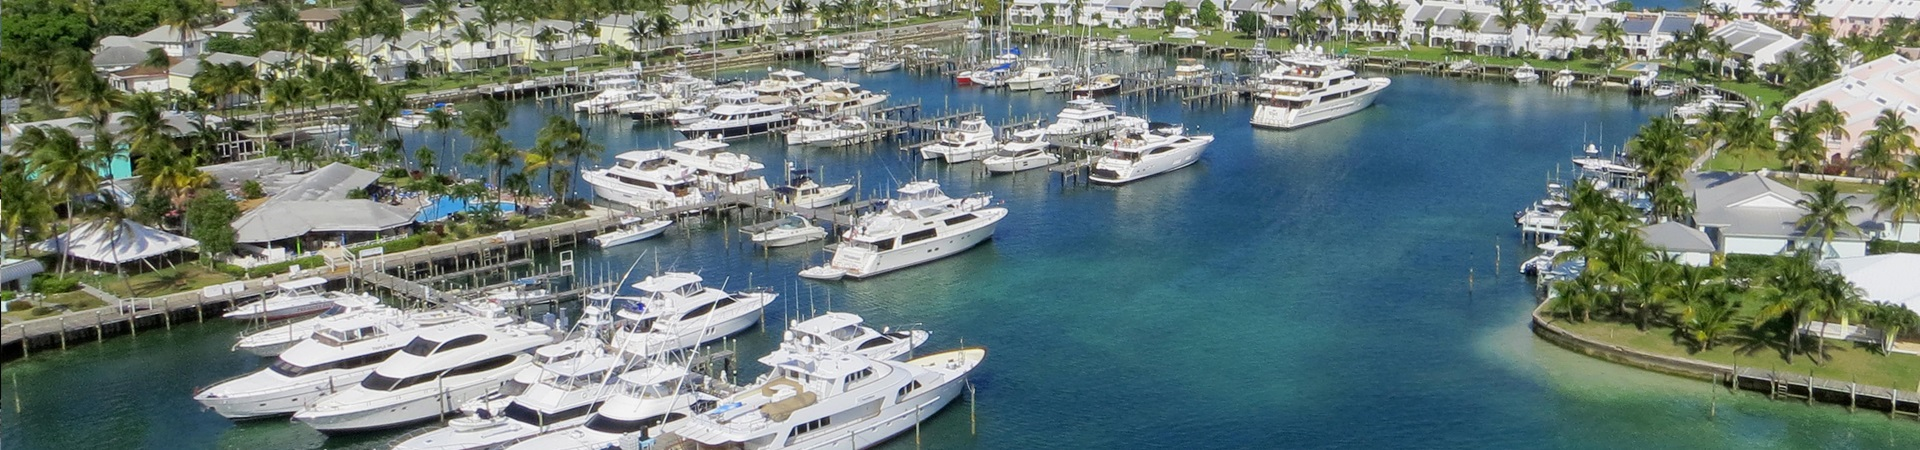 Treasure Cay Marina in Abaco, 0